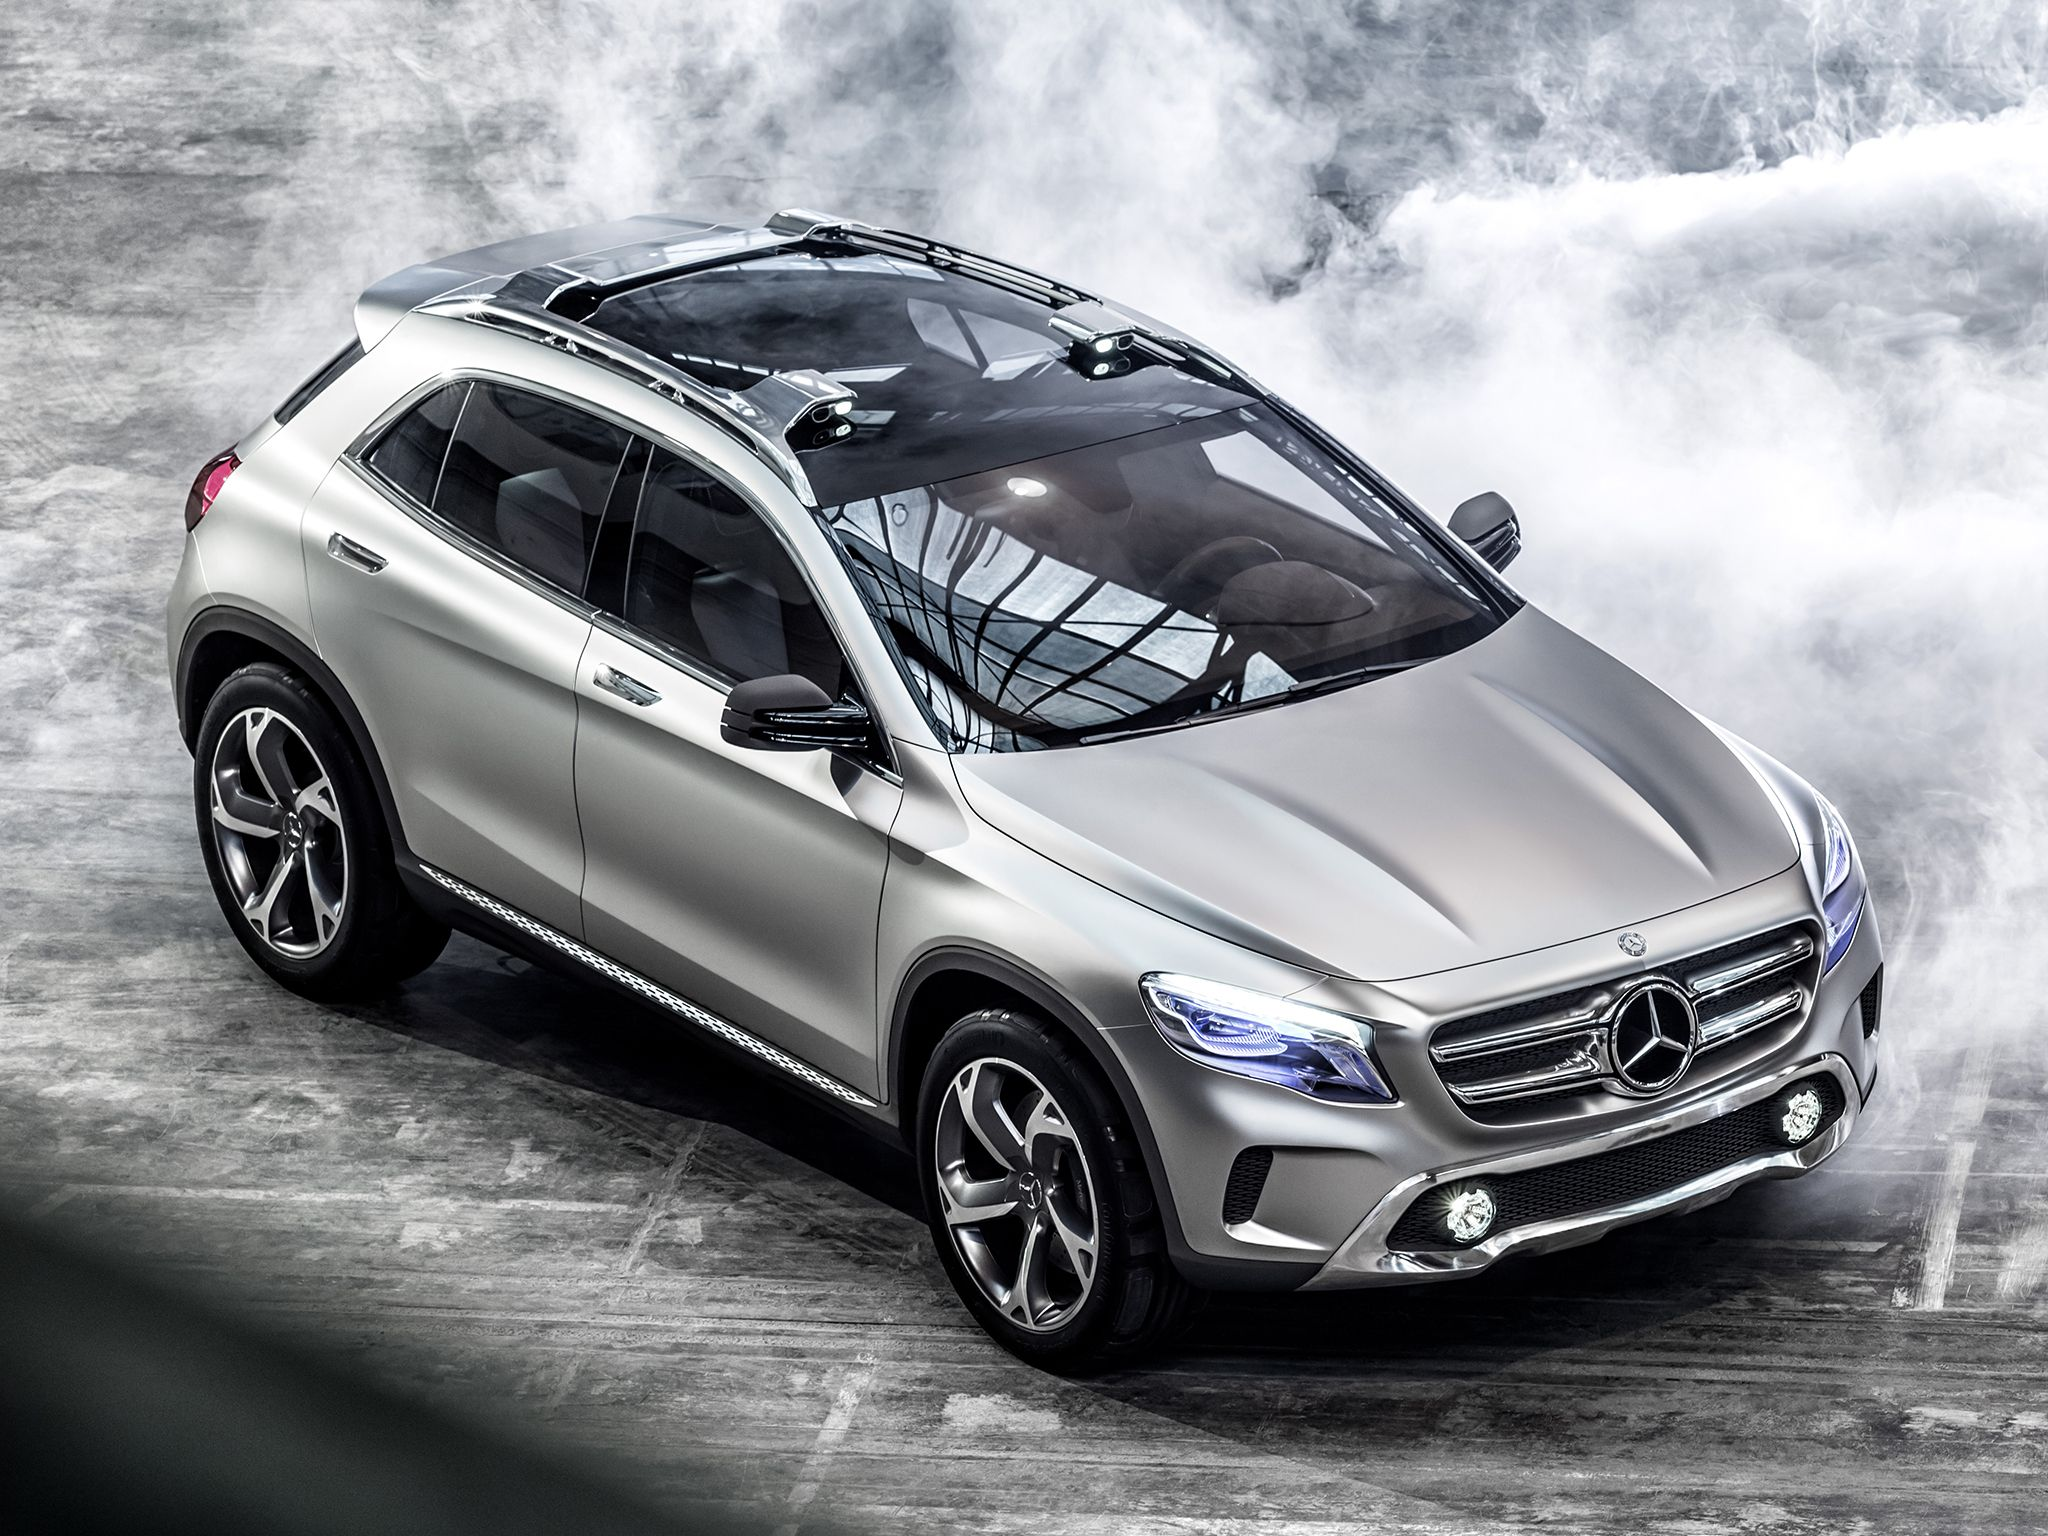 2016 Mercedes Benz Gle Concept Replaces Ml Series